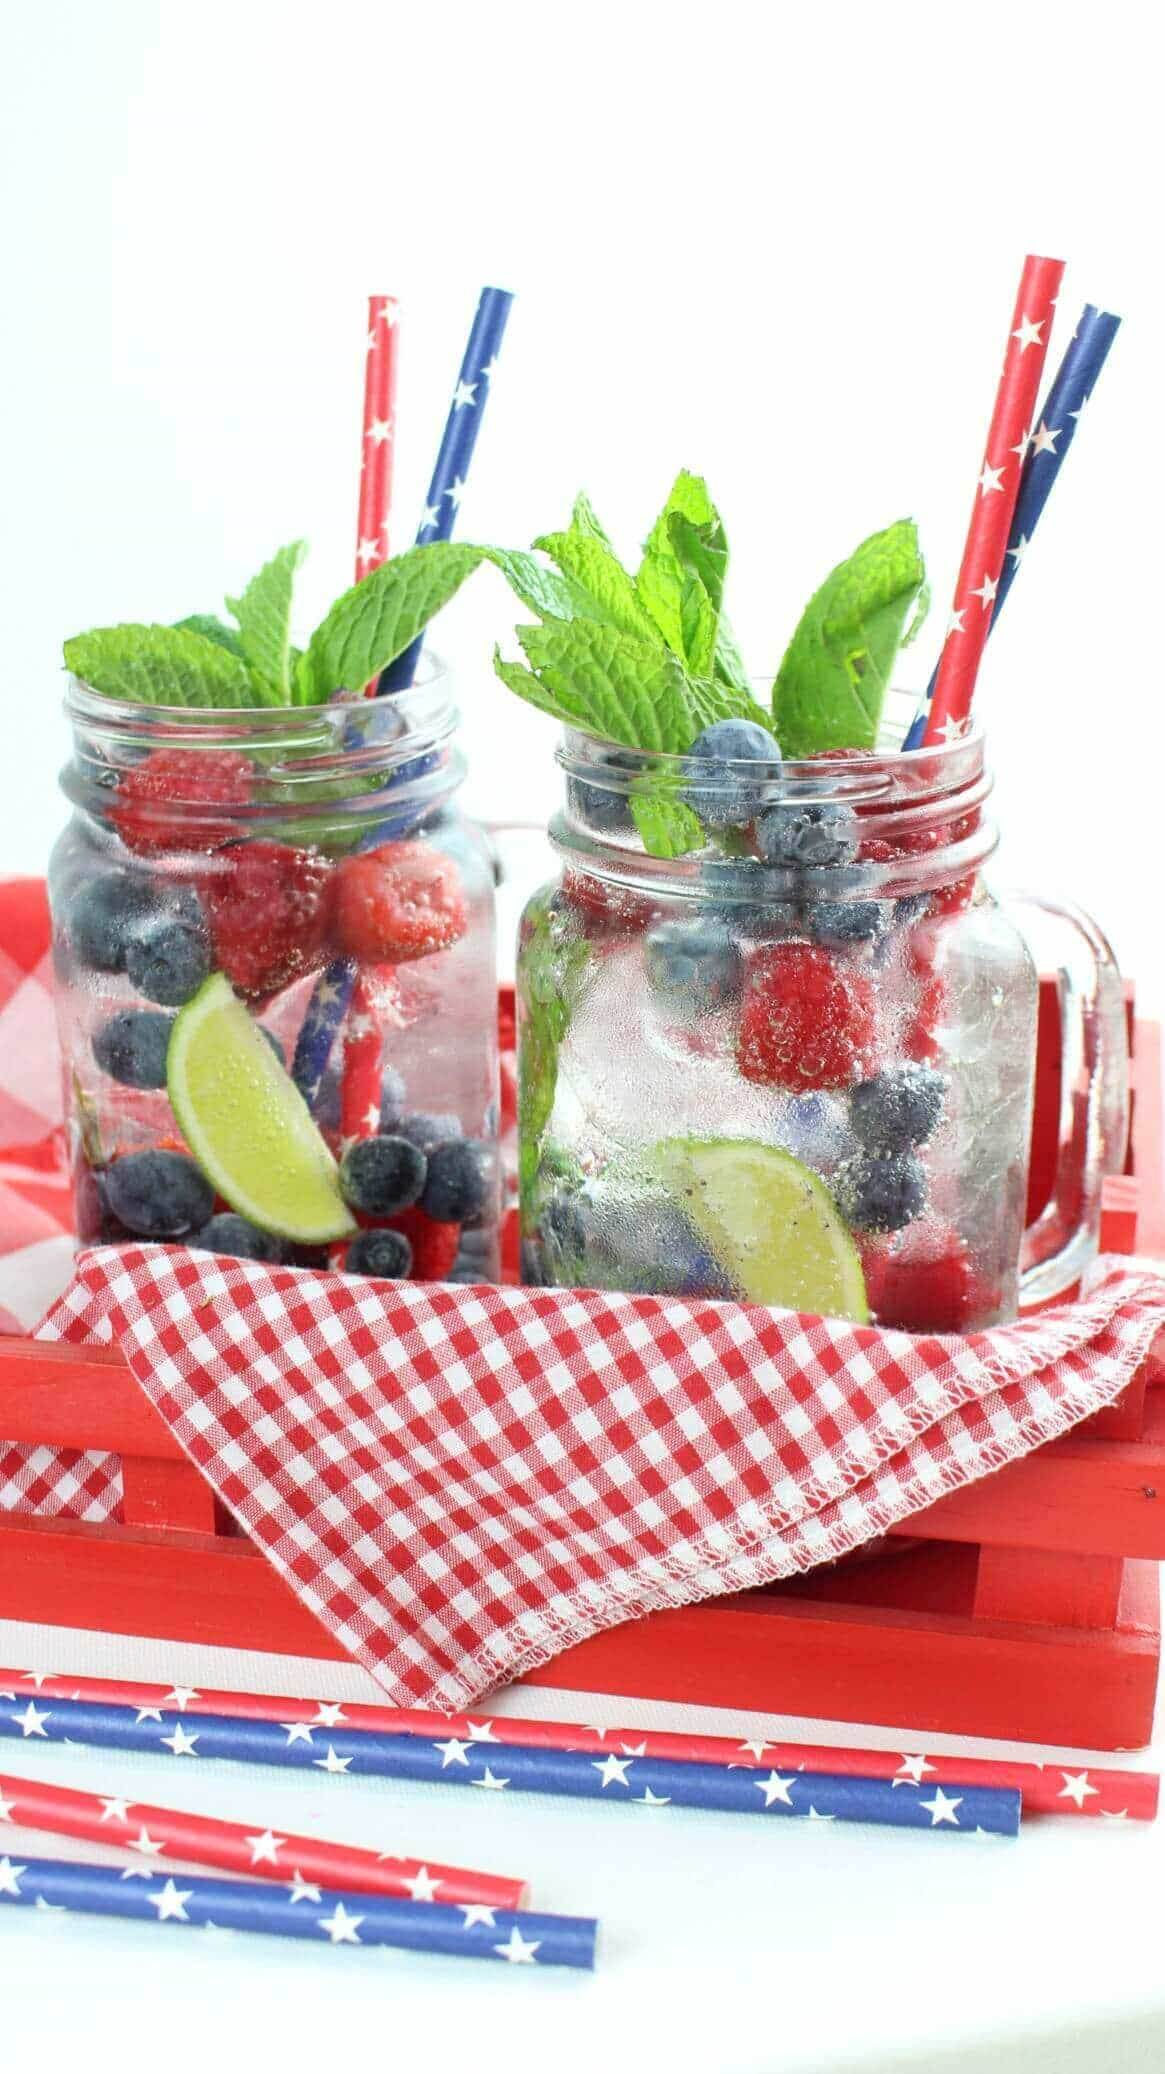 Two raspberry and blueberry mojitos on a red gingham napkin in a red tray with patriotic drinking straws.